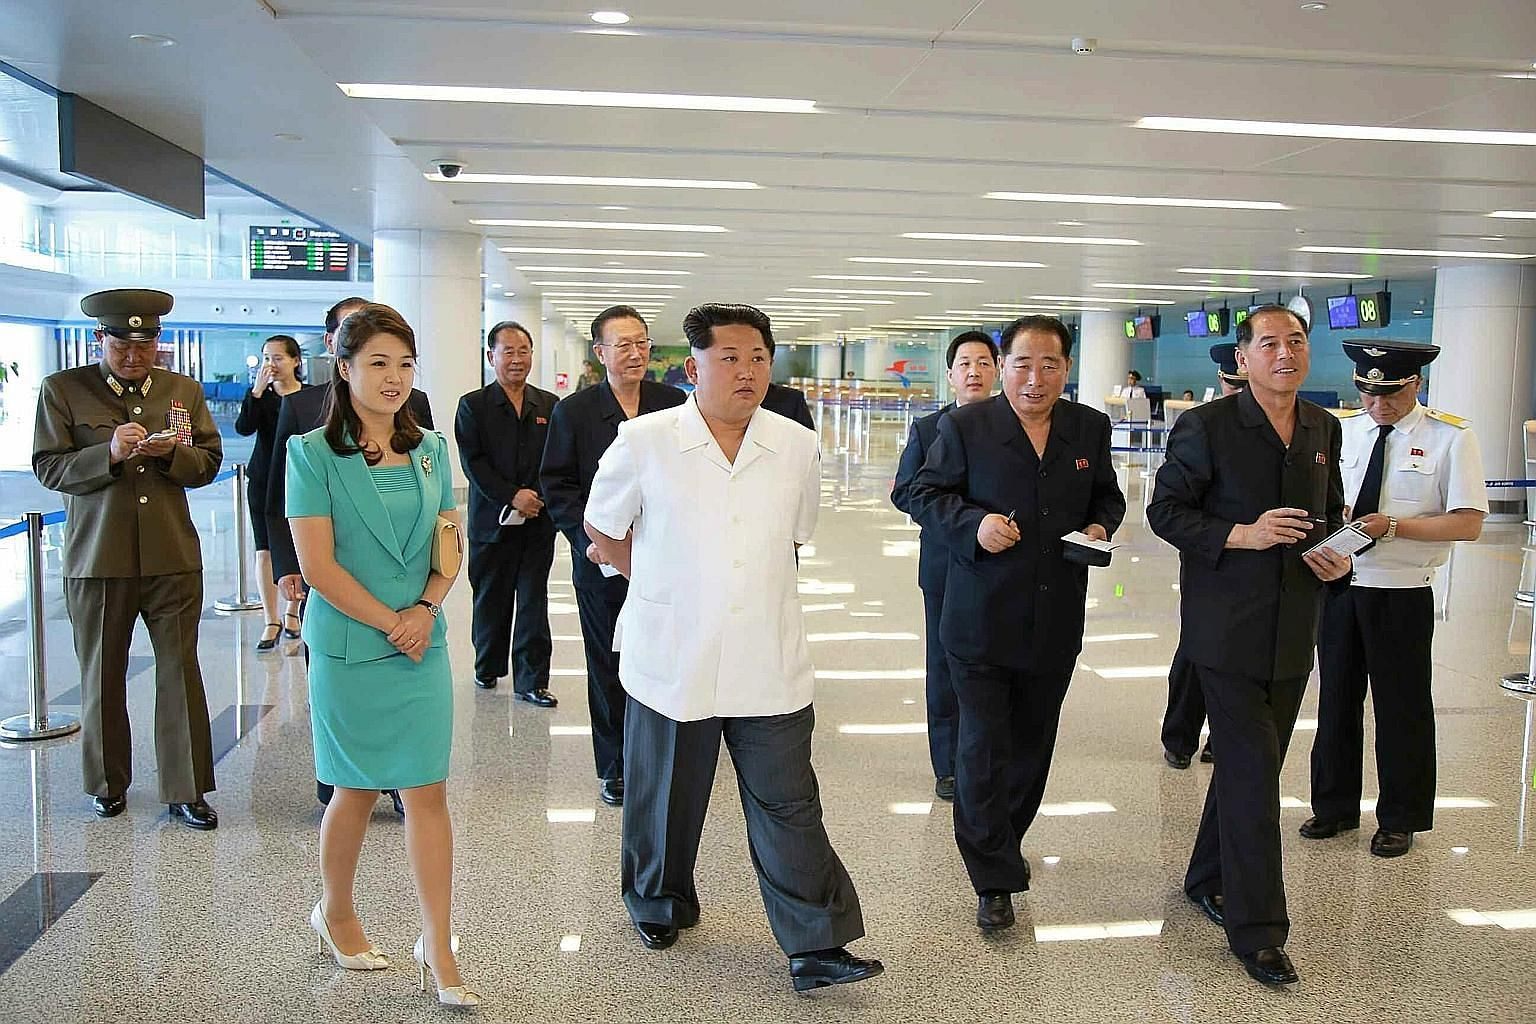 Pictures released yesterday by the Rodong Sinmun newspaper show North Korean leader Kim Jong Un (centre) and his wife, Ms Ri Sol Ju, inspecting the new terminal (below) at Pyongyang International Airport.